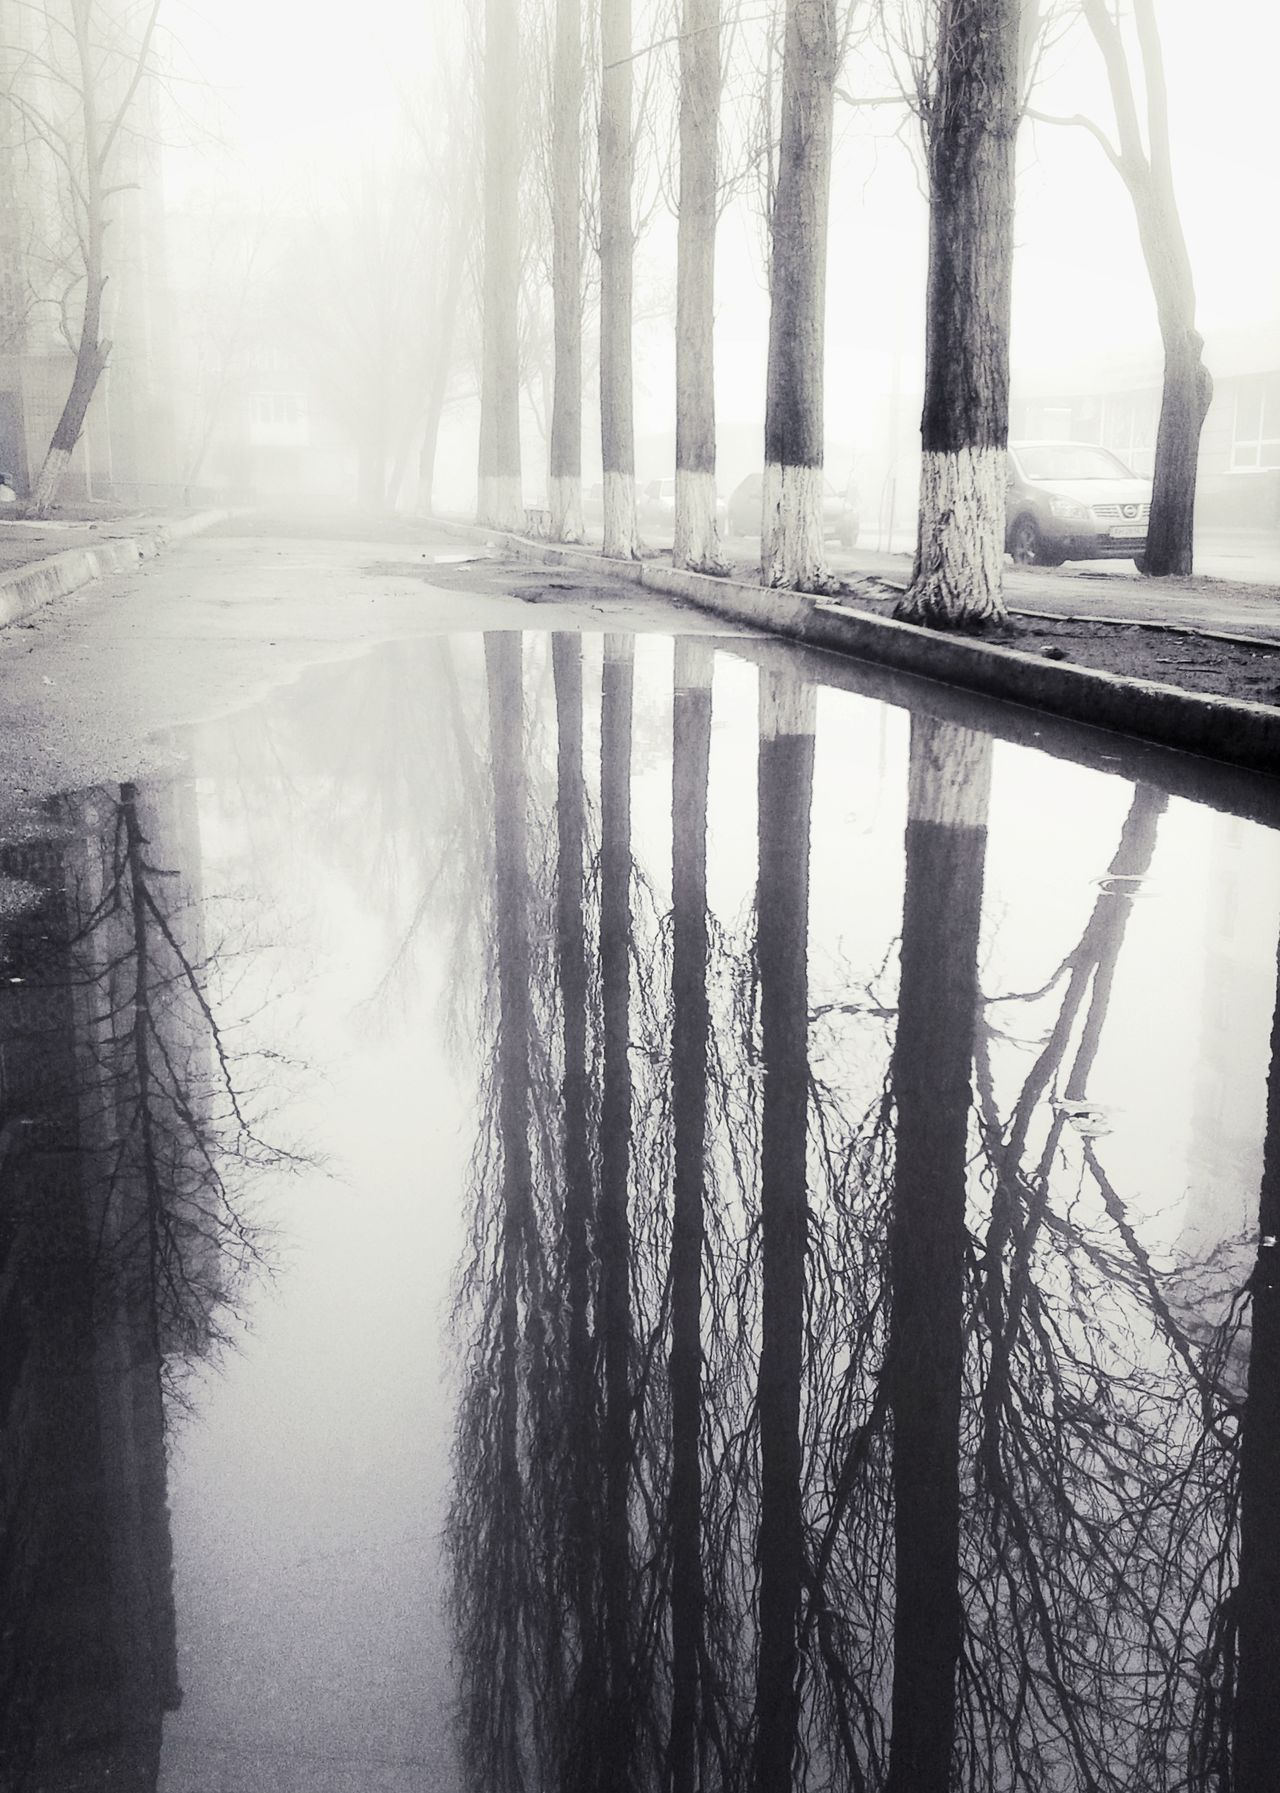 Reflection Tree Water Cold Temperature The Way Forward Calm Wet Weather Outdoors Bare Tree Branch Outdoor Photography Reflection Foggy Weather Spring Tranquility Foggy Morning Springtime Foggy Town Rainy Season Rain Built Structure Walking Growth